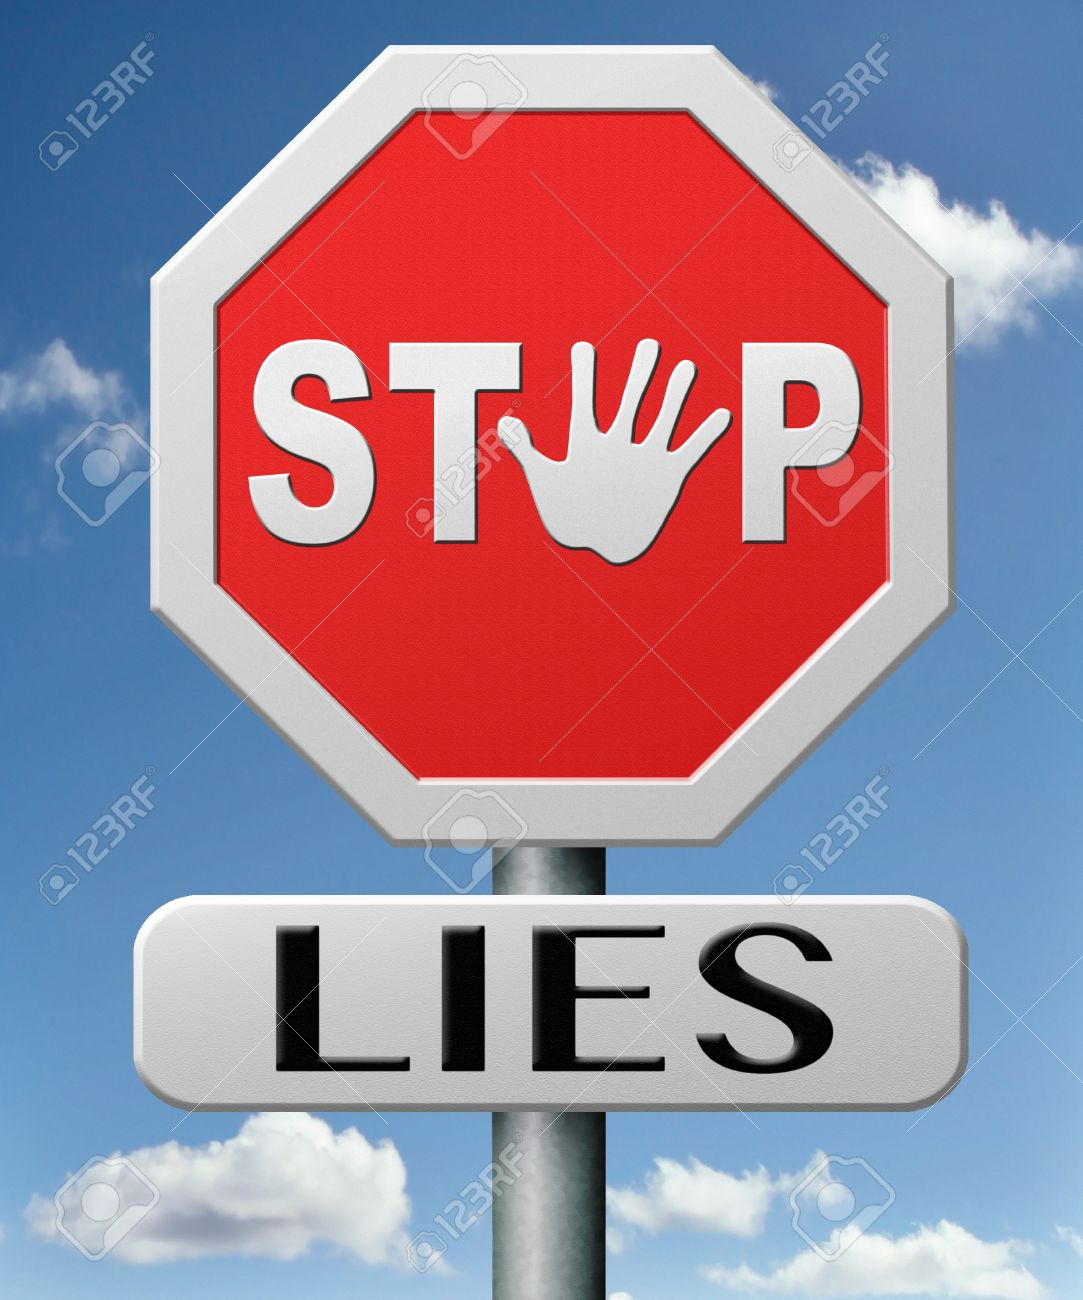 Stop Lies No More Lying Tell The Truth Stock Photo, Picture And Royalty  Free Image. Image 17463046.